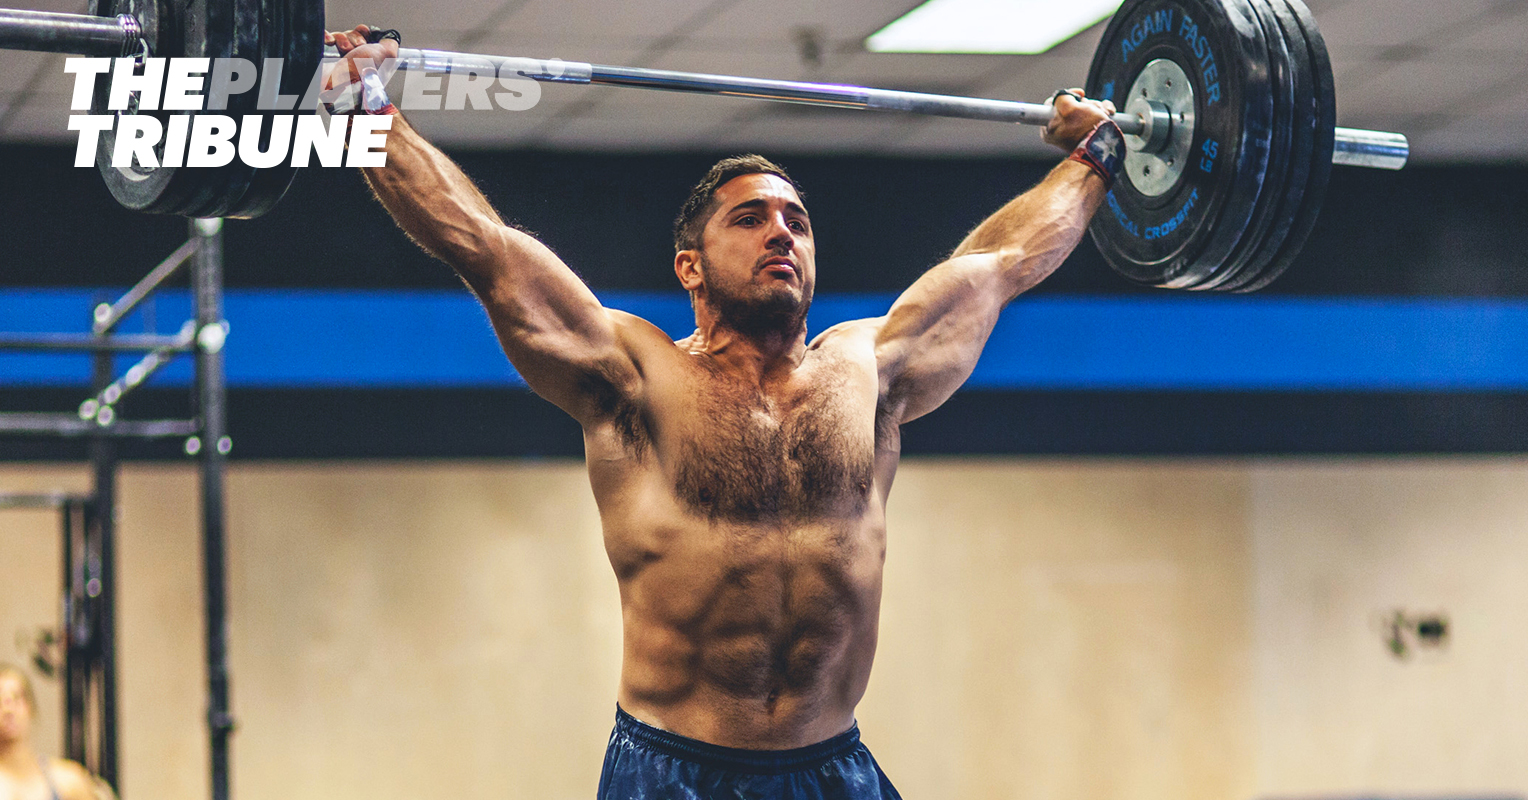 Why I Do CrossFit